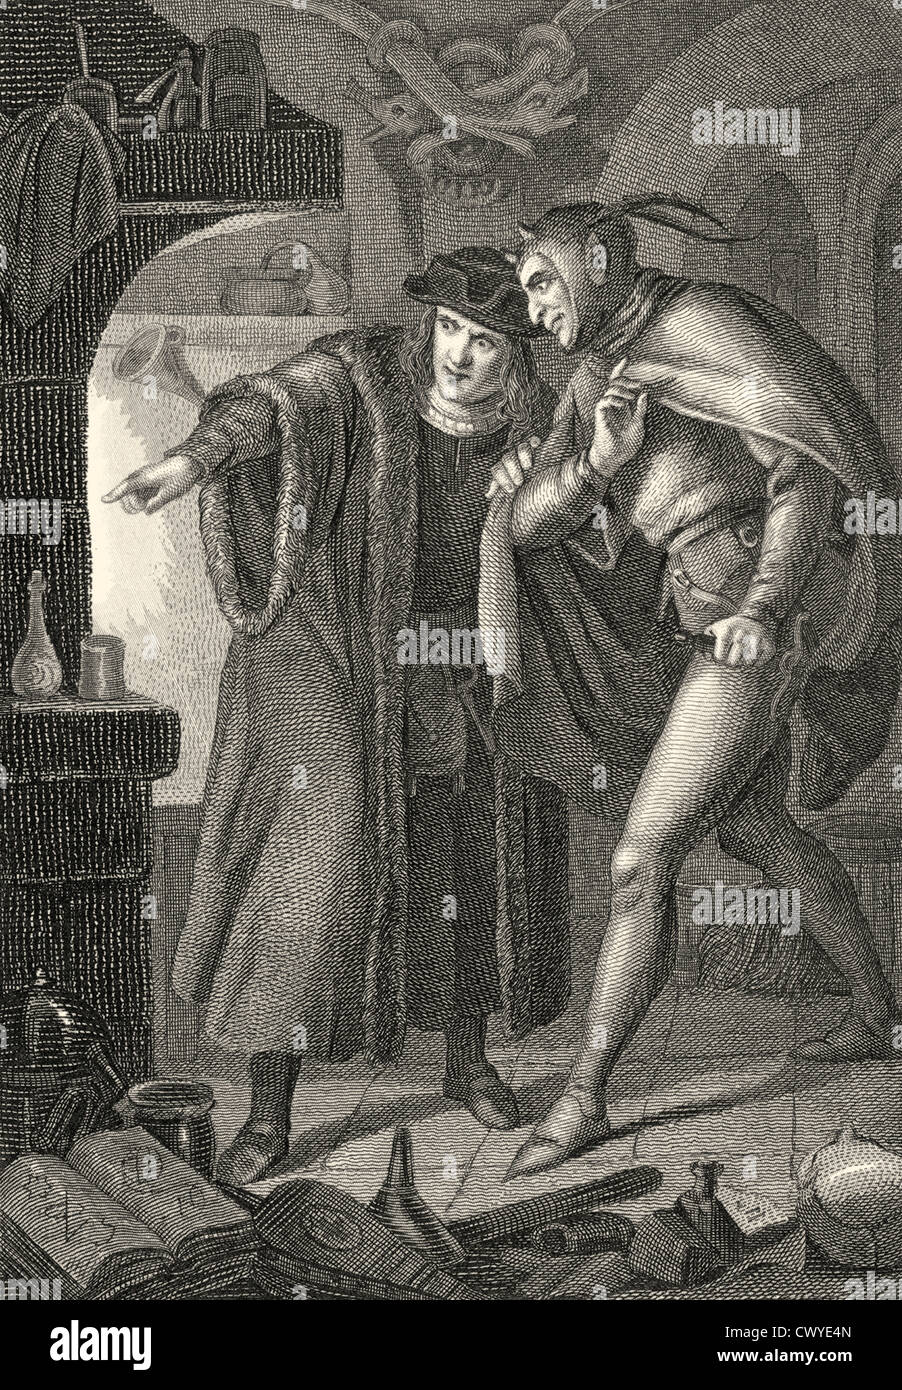 Faustian pact between Mephistopheles or Mephisto and Heinrich Faust, scene from the tragedy Faust by Johann Wolfgang - Stock Image